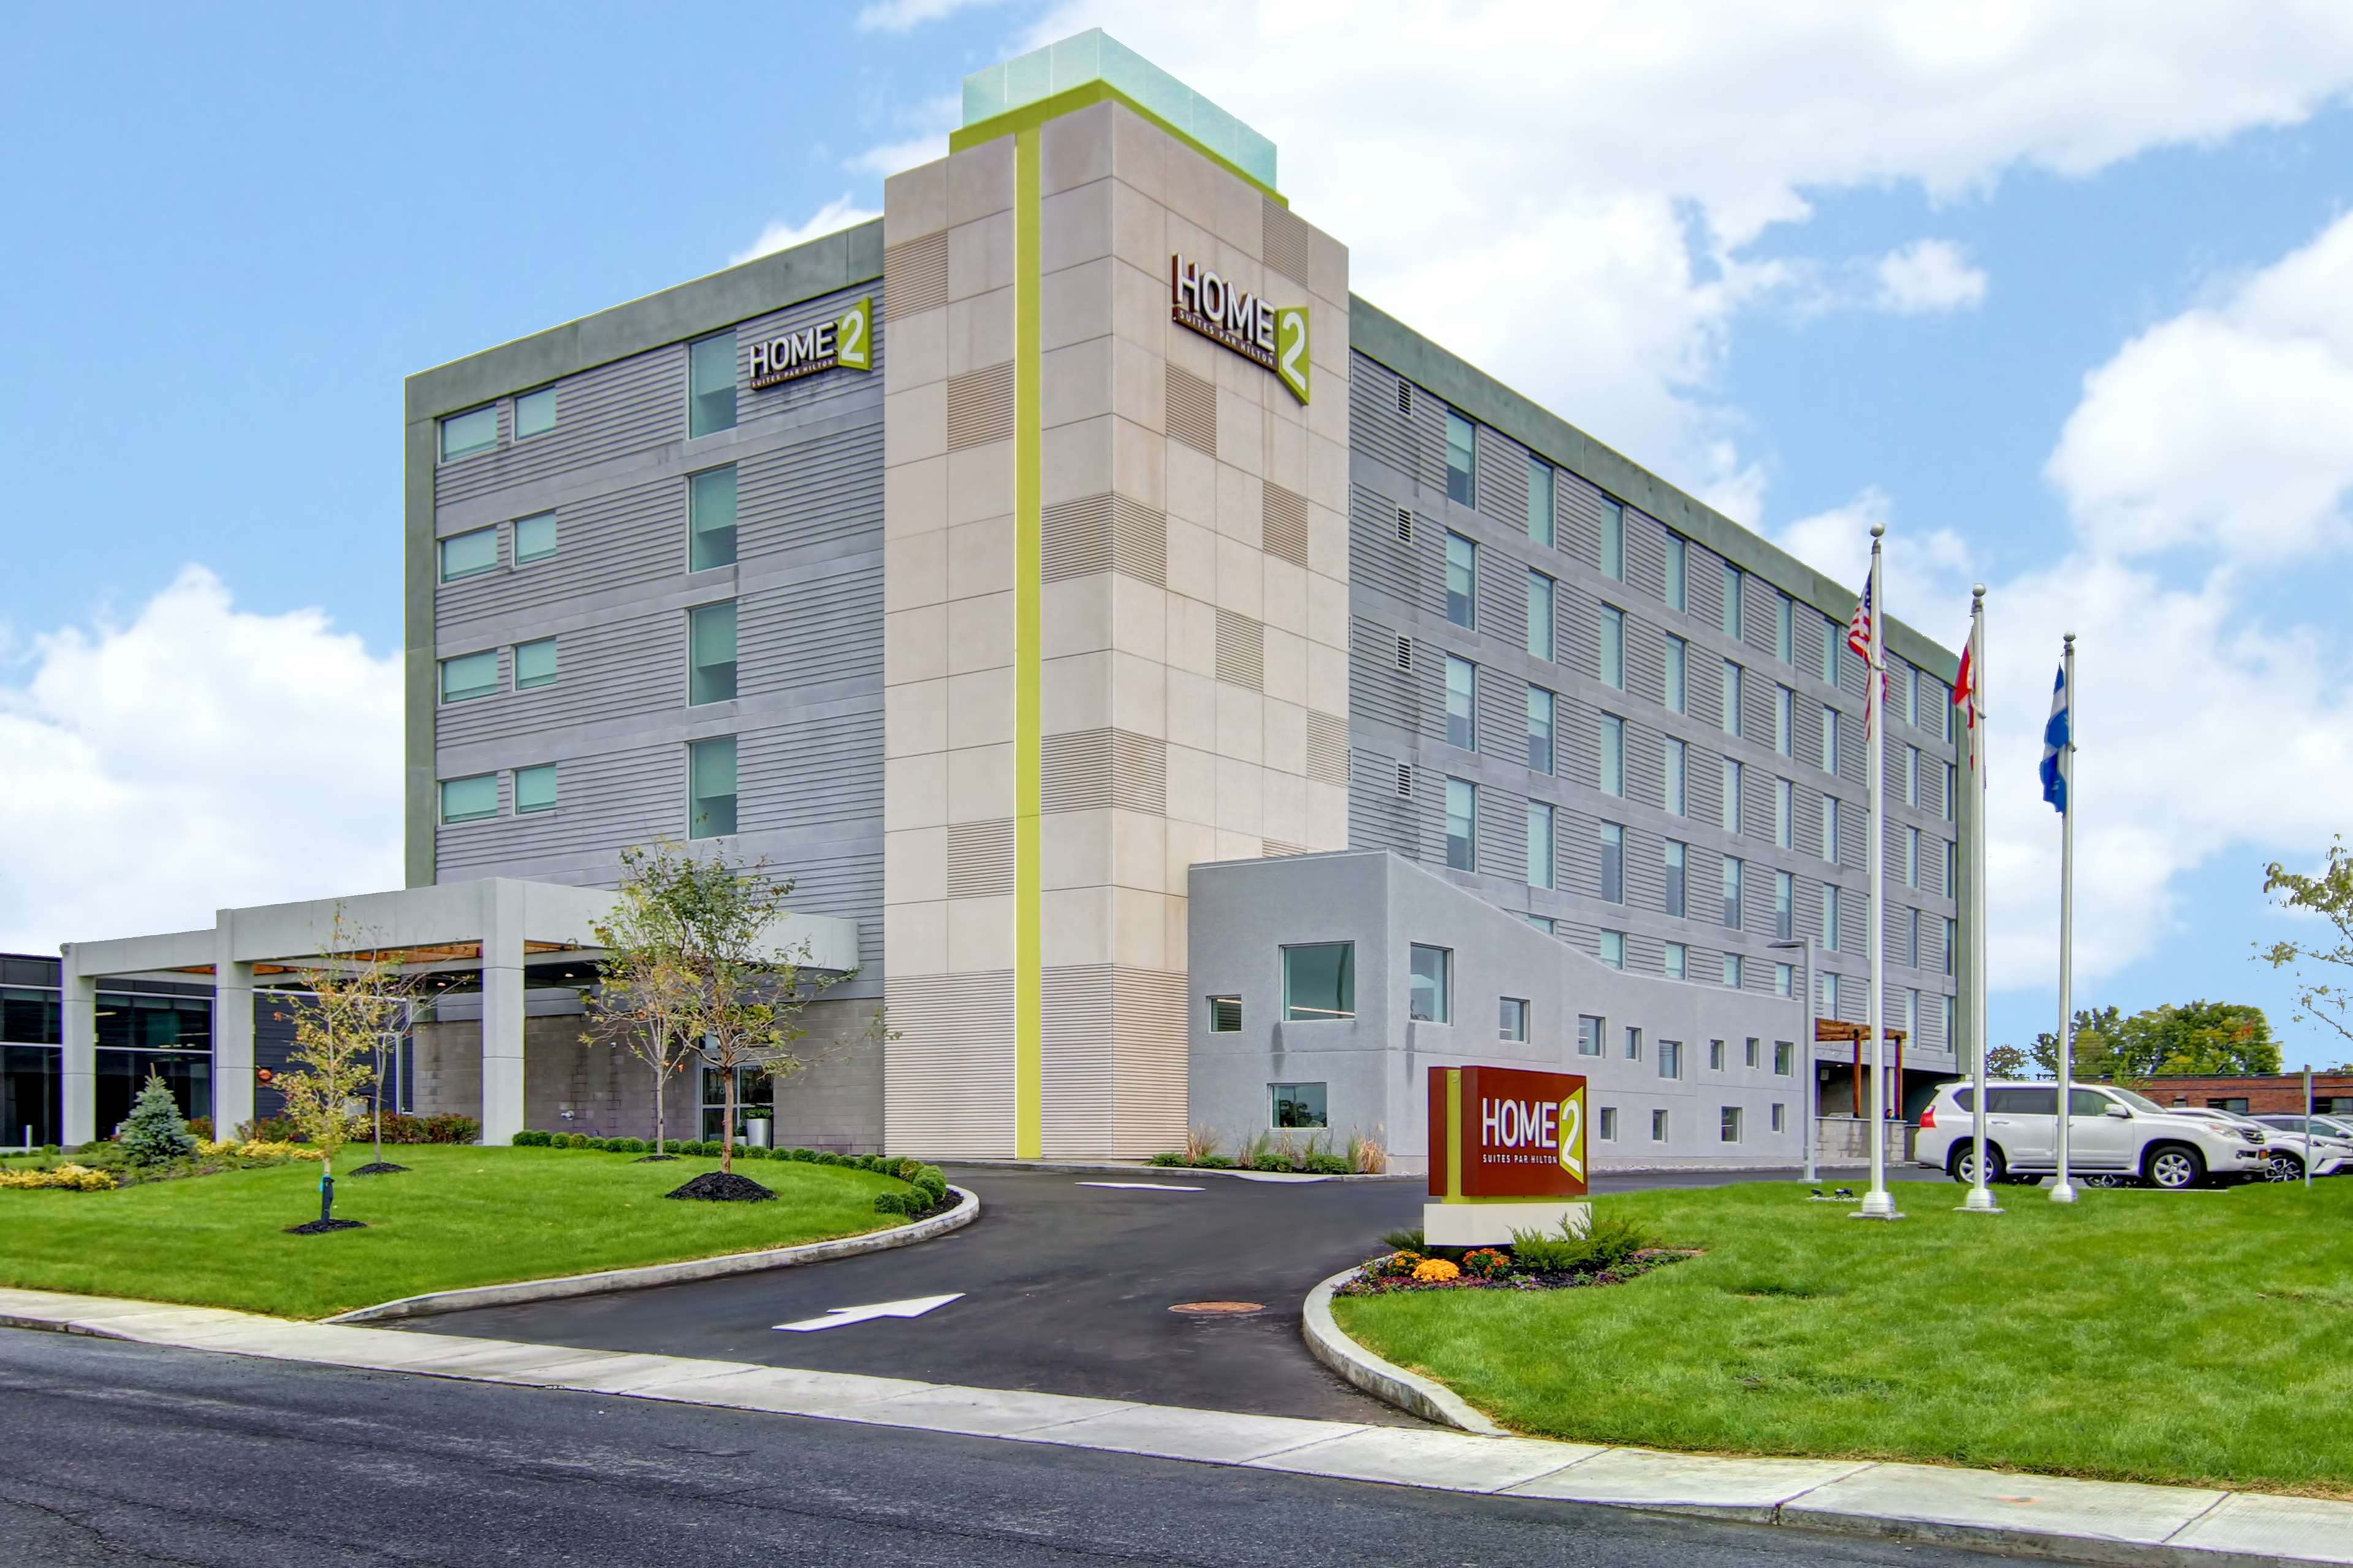 Extended Stay Hotel in QC Dorval H9P 1J1 Home2 Suites by Hilton Montreal Dorval 1855 Transcanadienne  (514)676-8080